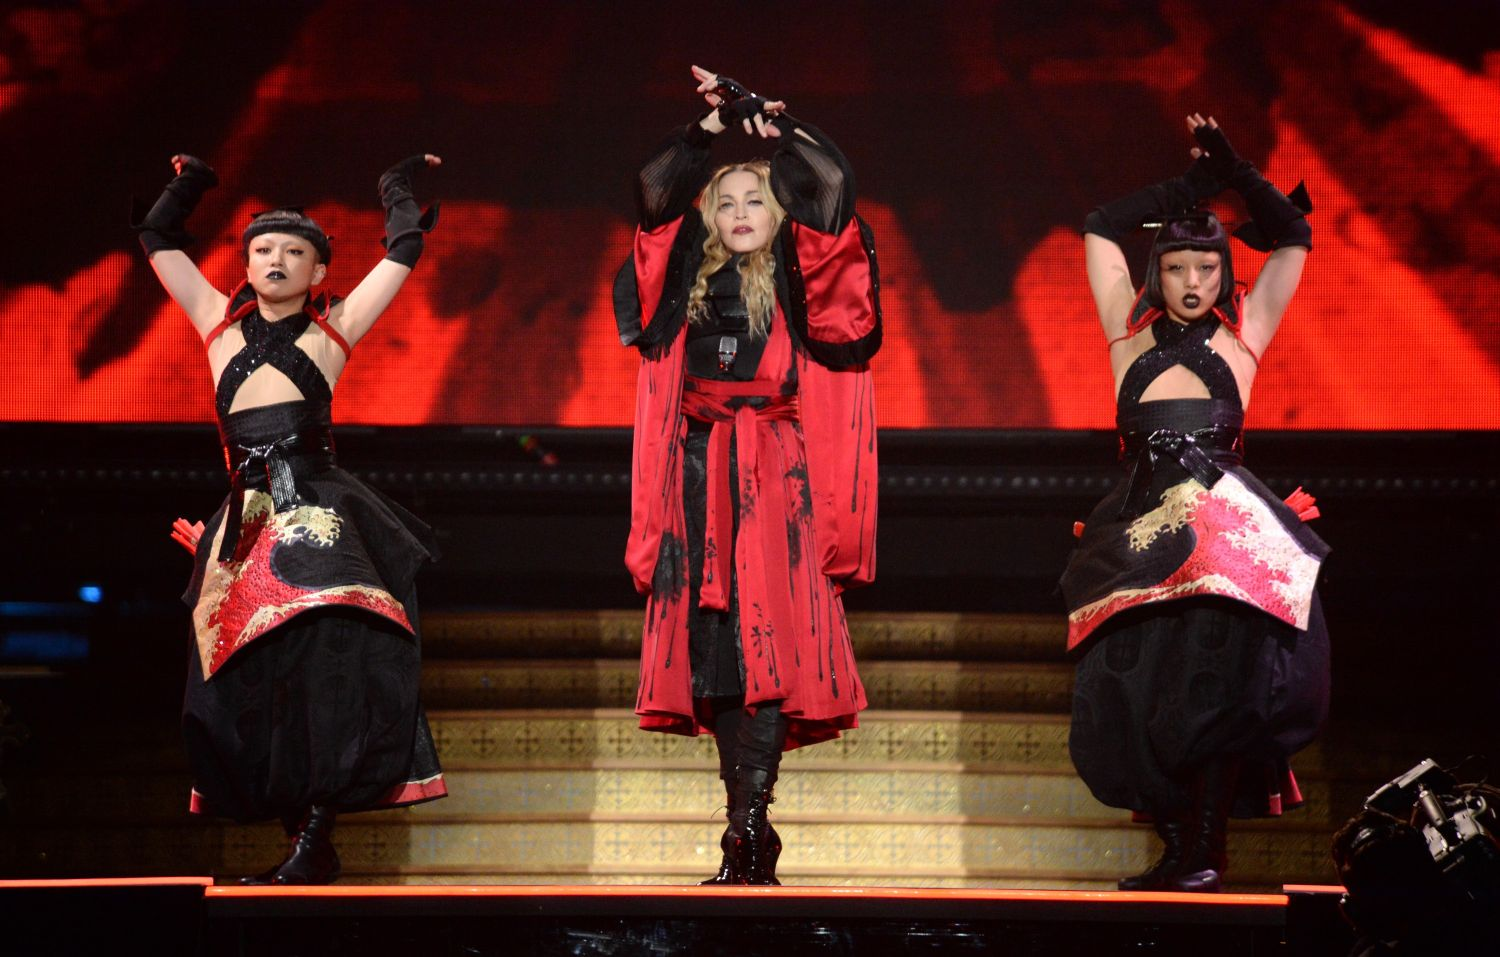 Madonna Rebel Heart Tour Numbers